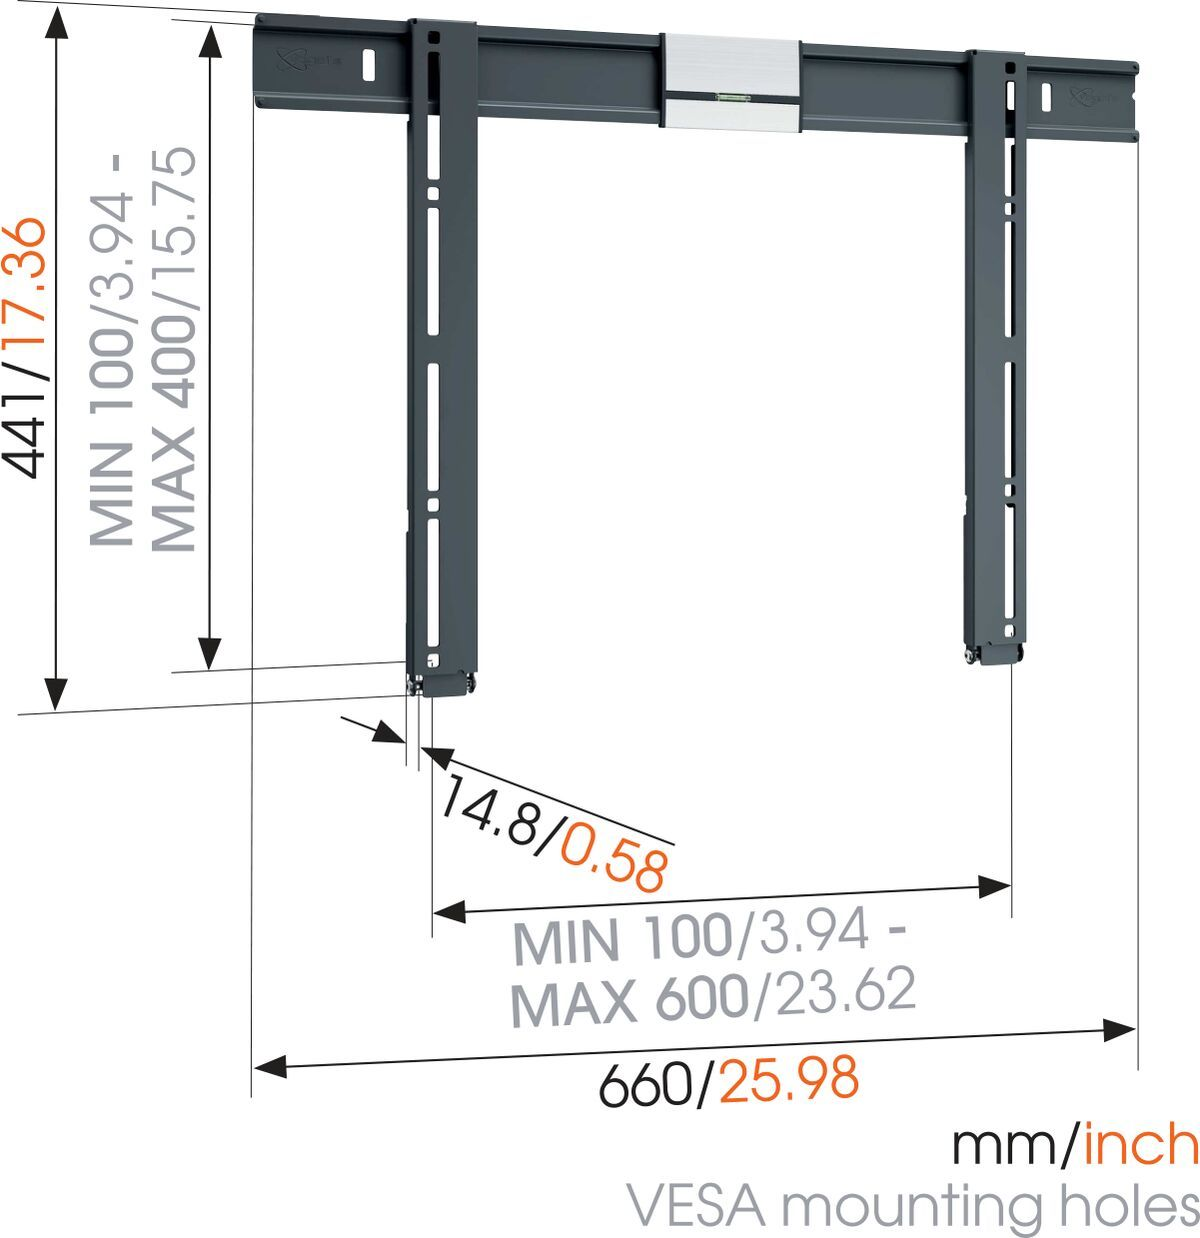 Vogel's THIN 505 ExtraThin Fixed TV Wall Mount - Suitable for 40 up to 65 inch TVs up to 40 kg - Dimensions